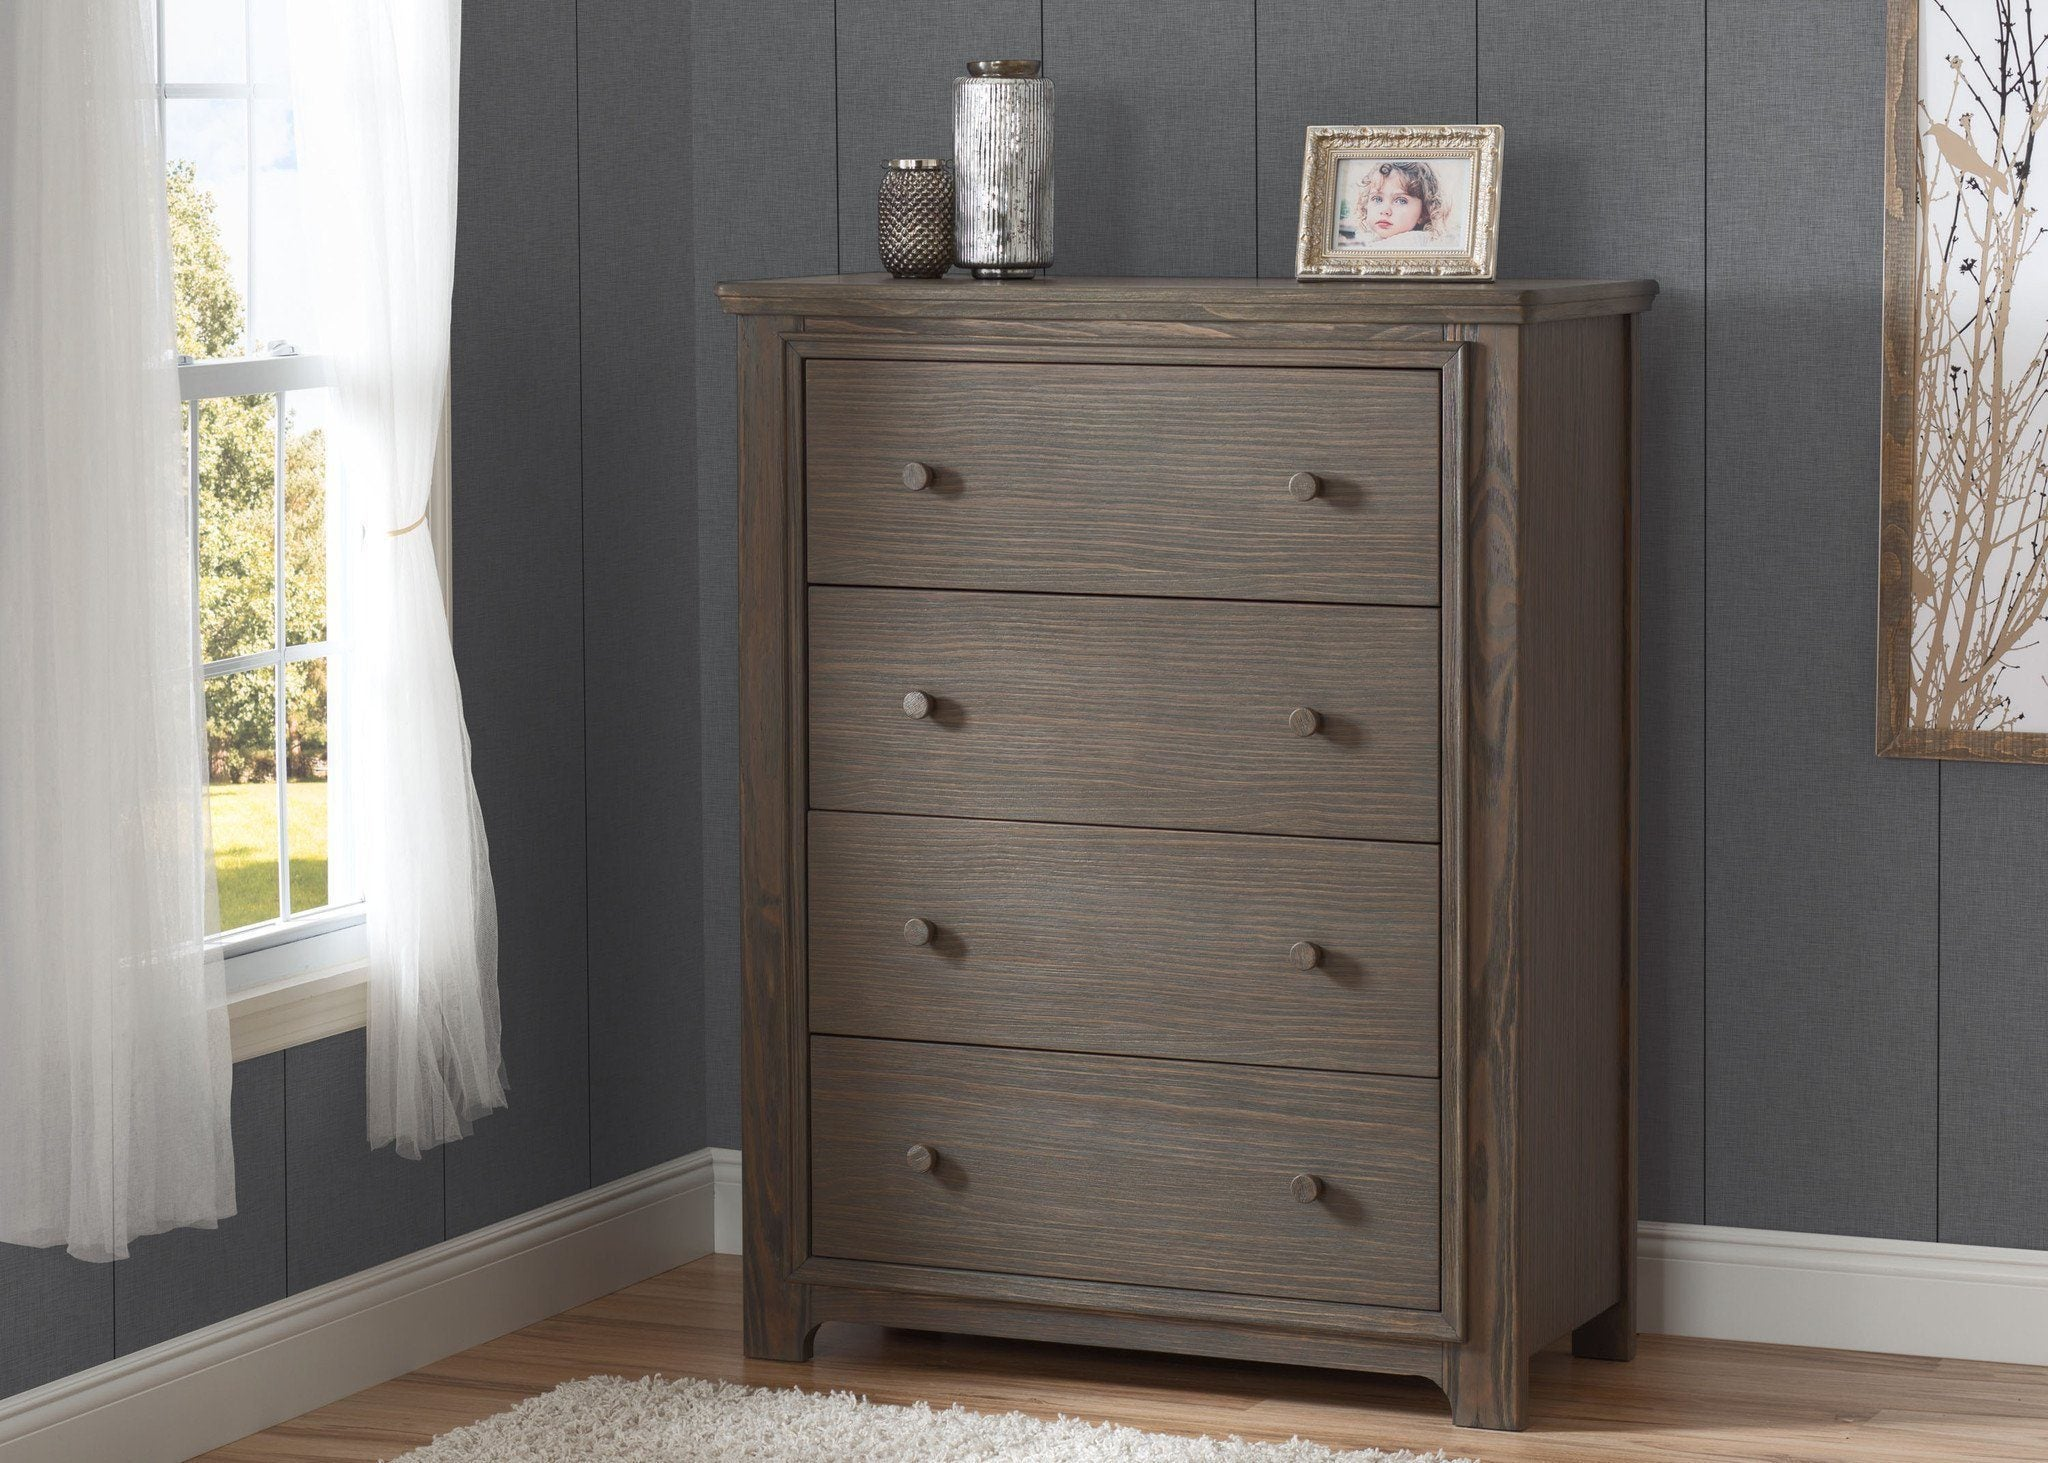 Serta Rustic Grey (084) Langley 4 Drawer Chest, Hangtag View a1a